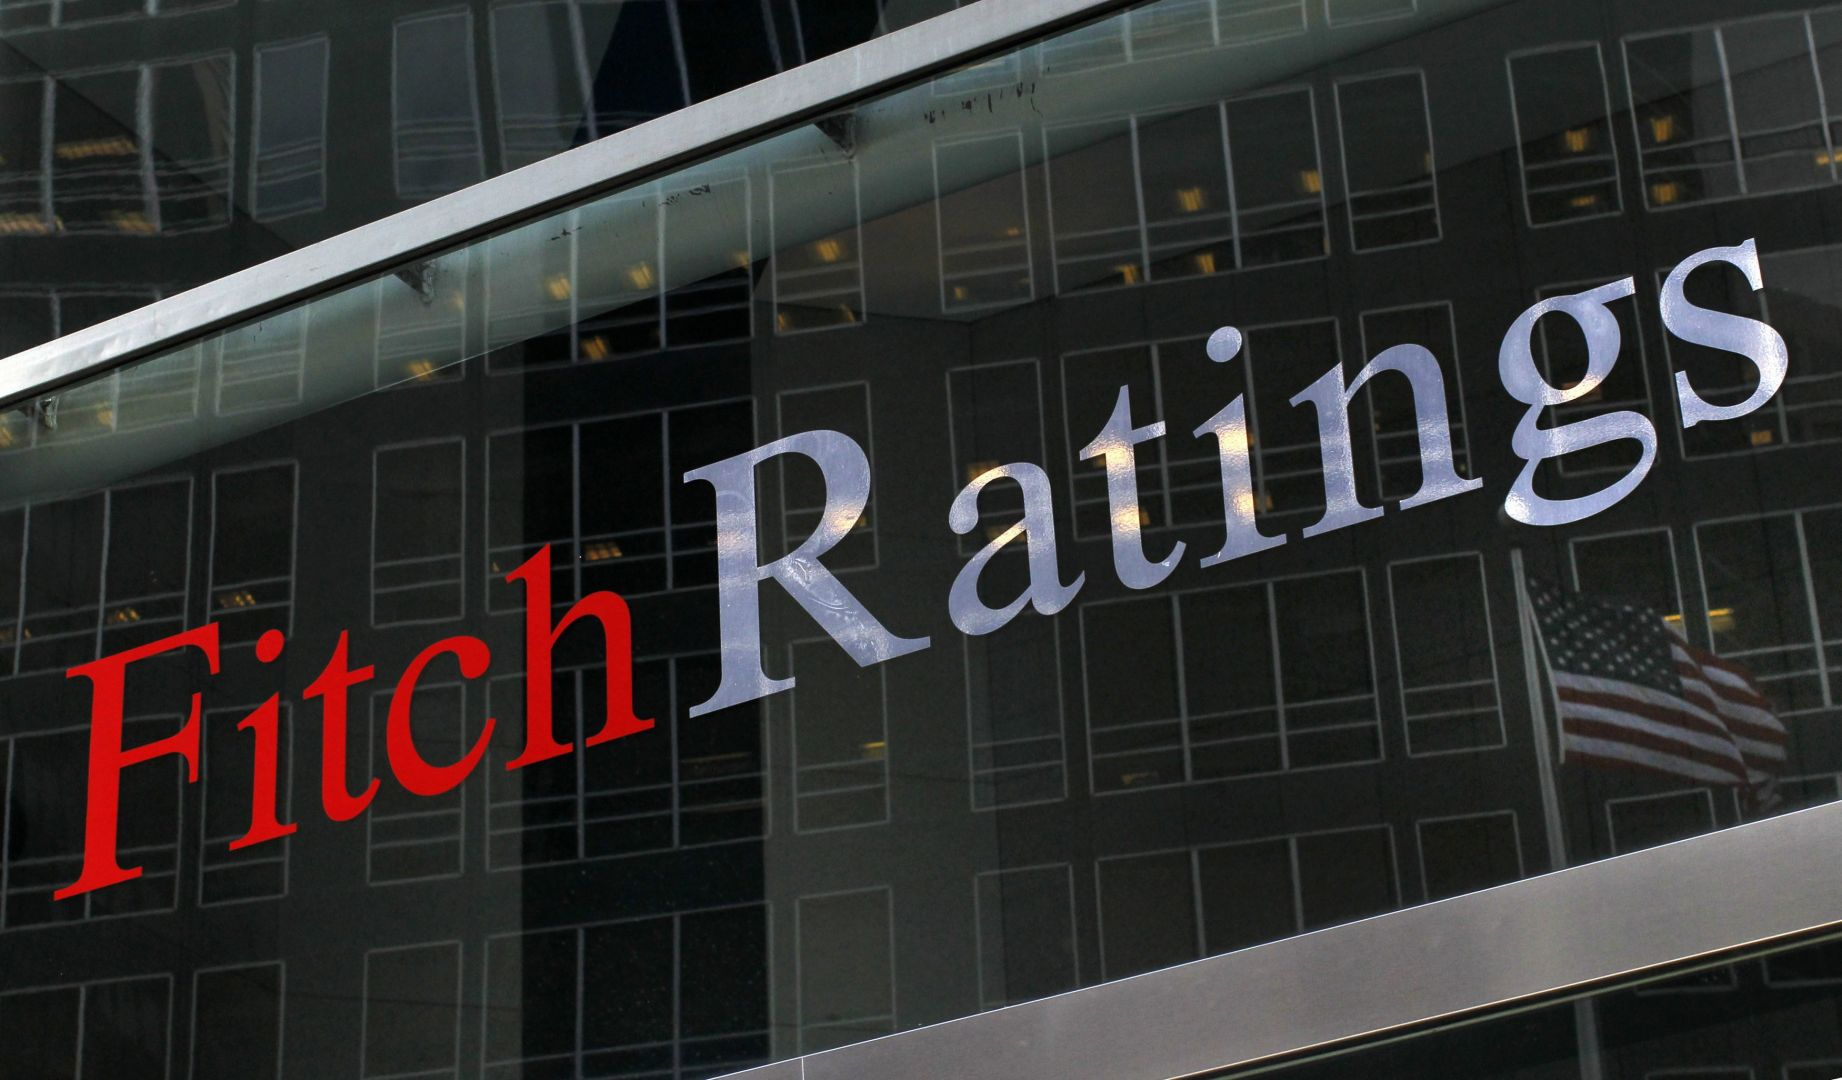 Fitch Ratings maintained Korea's national credit rating as AA- despite some risks including the geopolitical risk associated with North Korea.